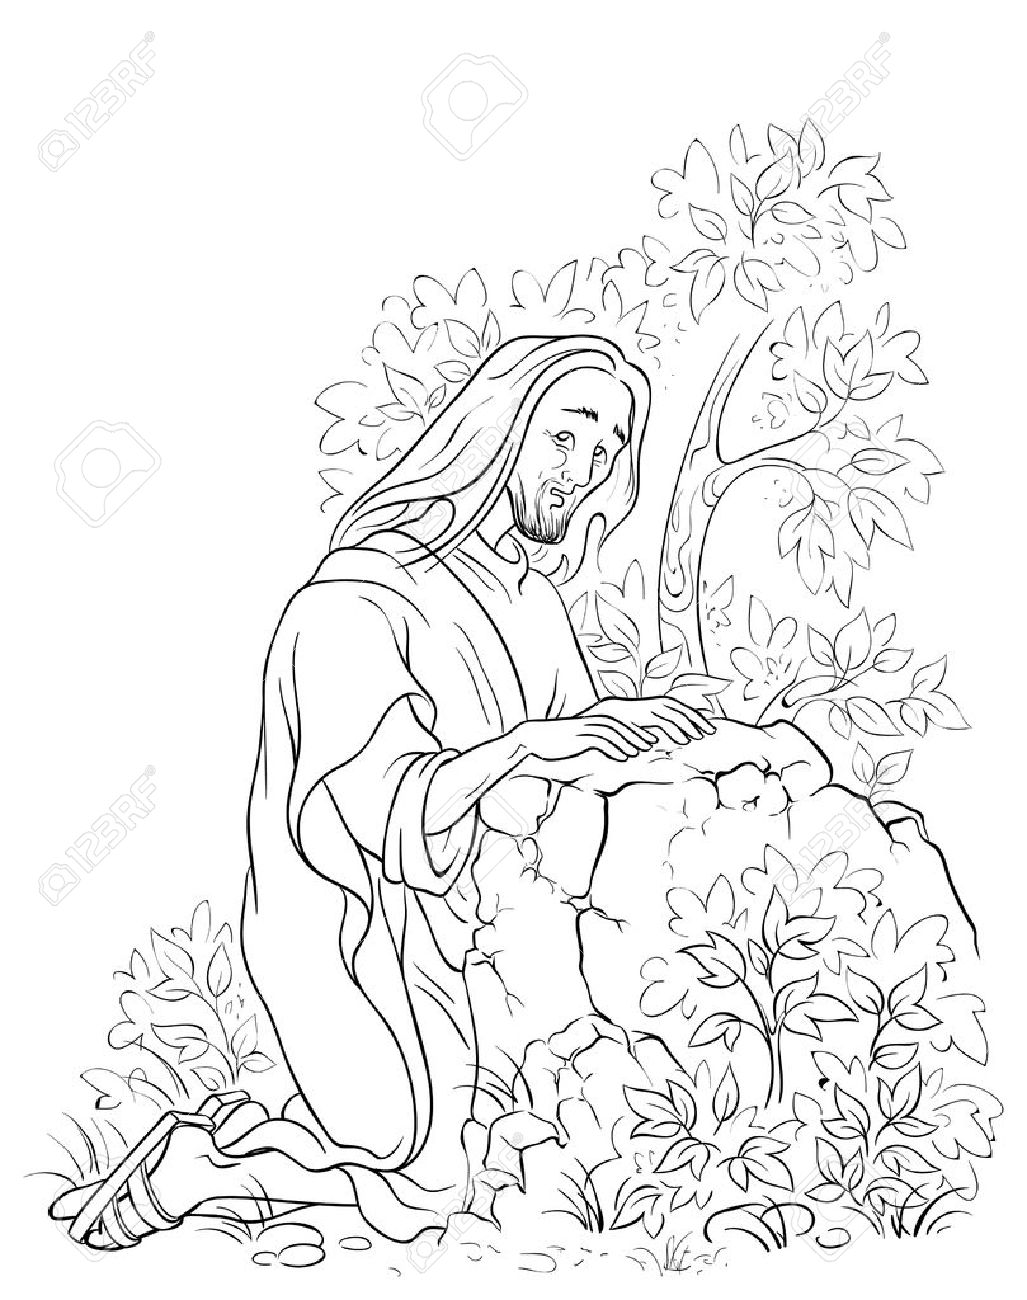 Agony In The Garden Jesus In Gethsemane Scene Coloring Page